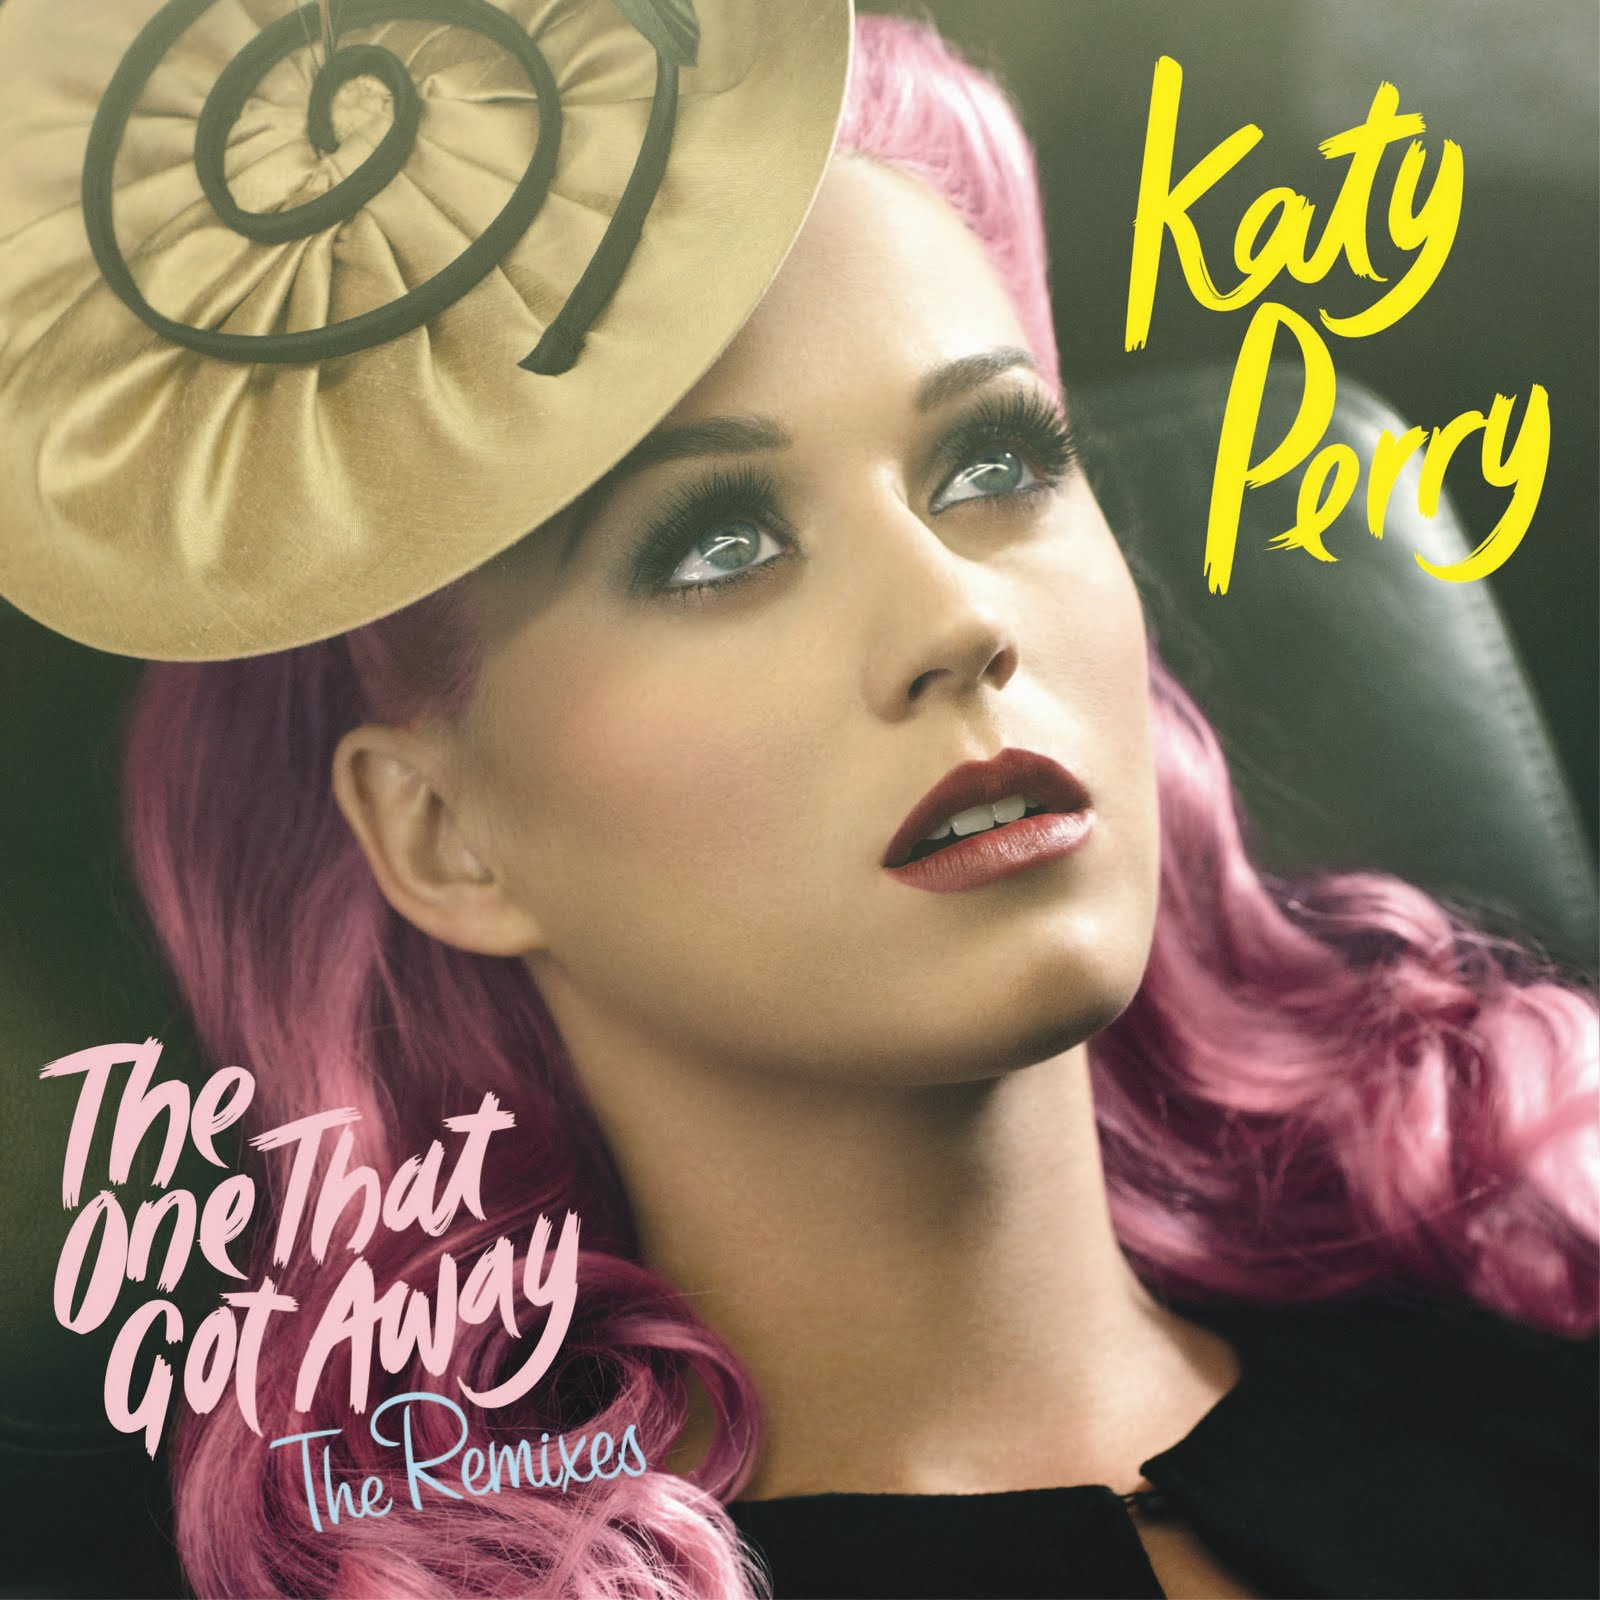 http://3.bp.blogspot.com/-tXC8NotOilk/TtSN3CpMslI/AAAAAAAAHF8/ROWqr7dOQ8o/s1600/Katy_Perry_-_The_One_that_Got_Away_%2528The_Remixes%2529-Promo-CDM-2011-DJ_INT.jpg